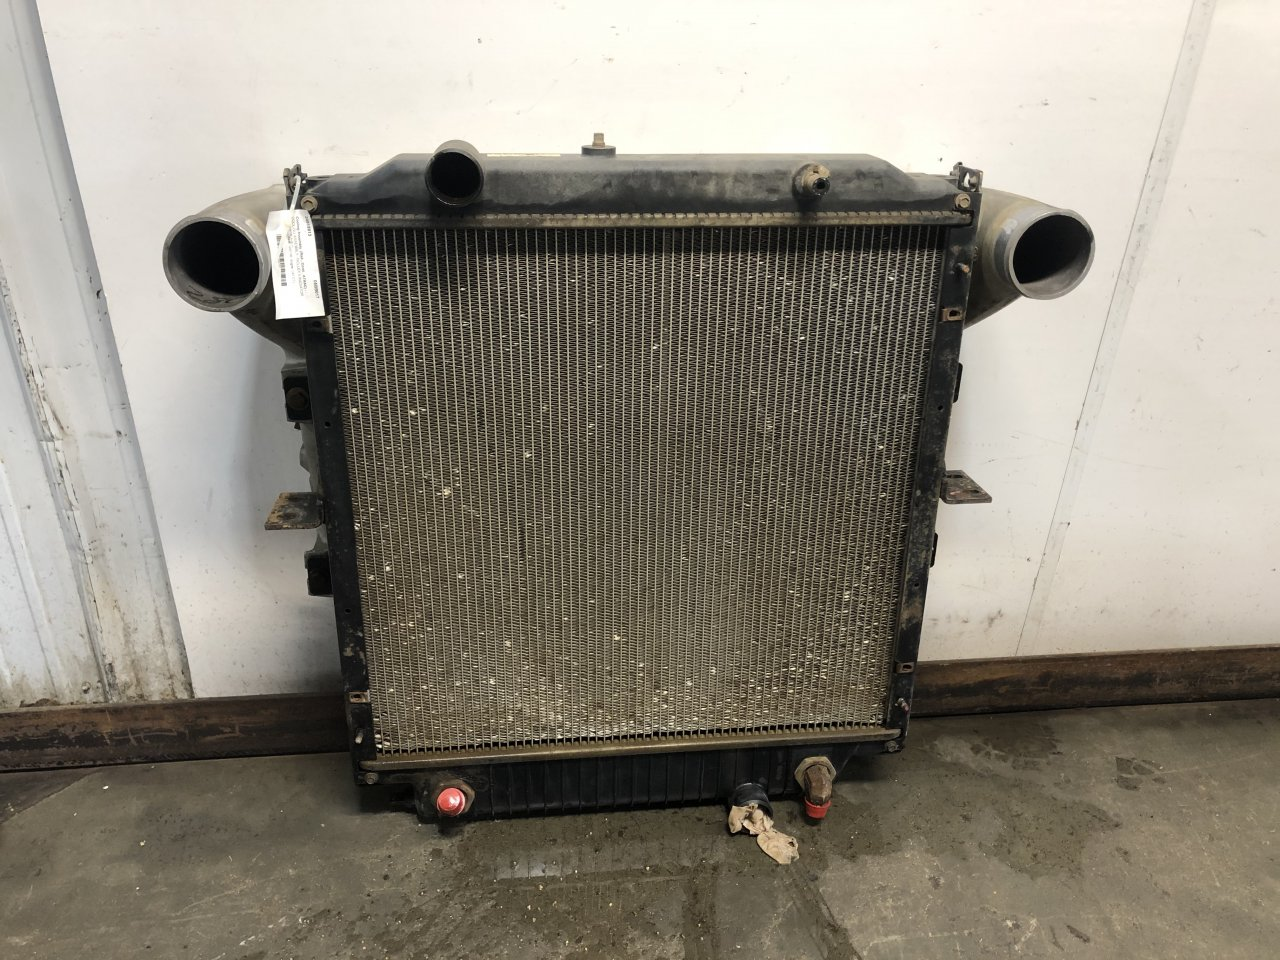 Blue Bird Vision Cooling Assembly. (Rad., Cond., ATAAC)